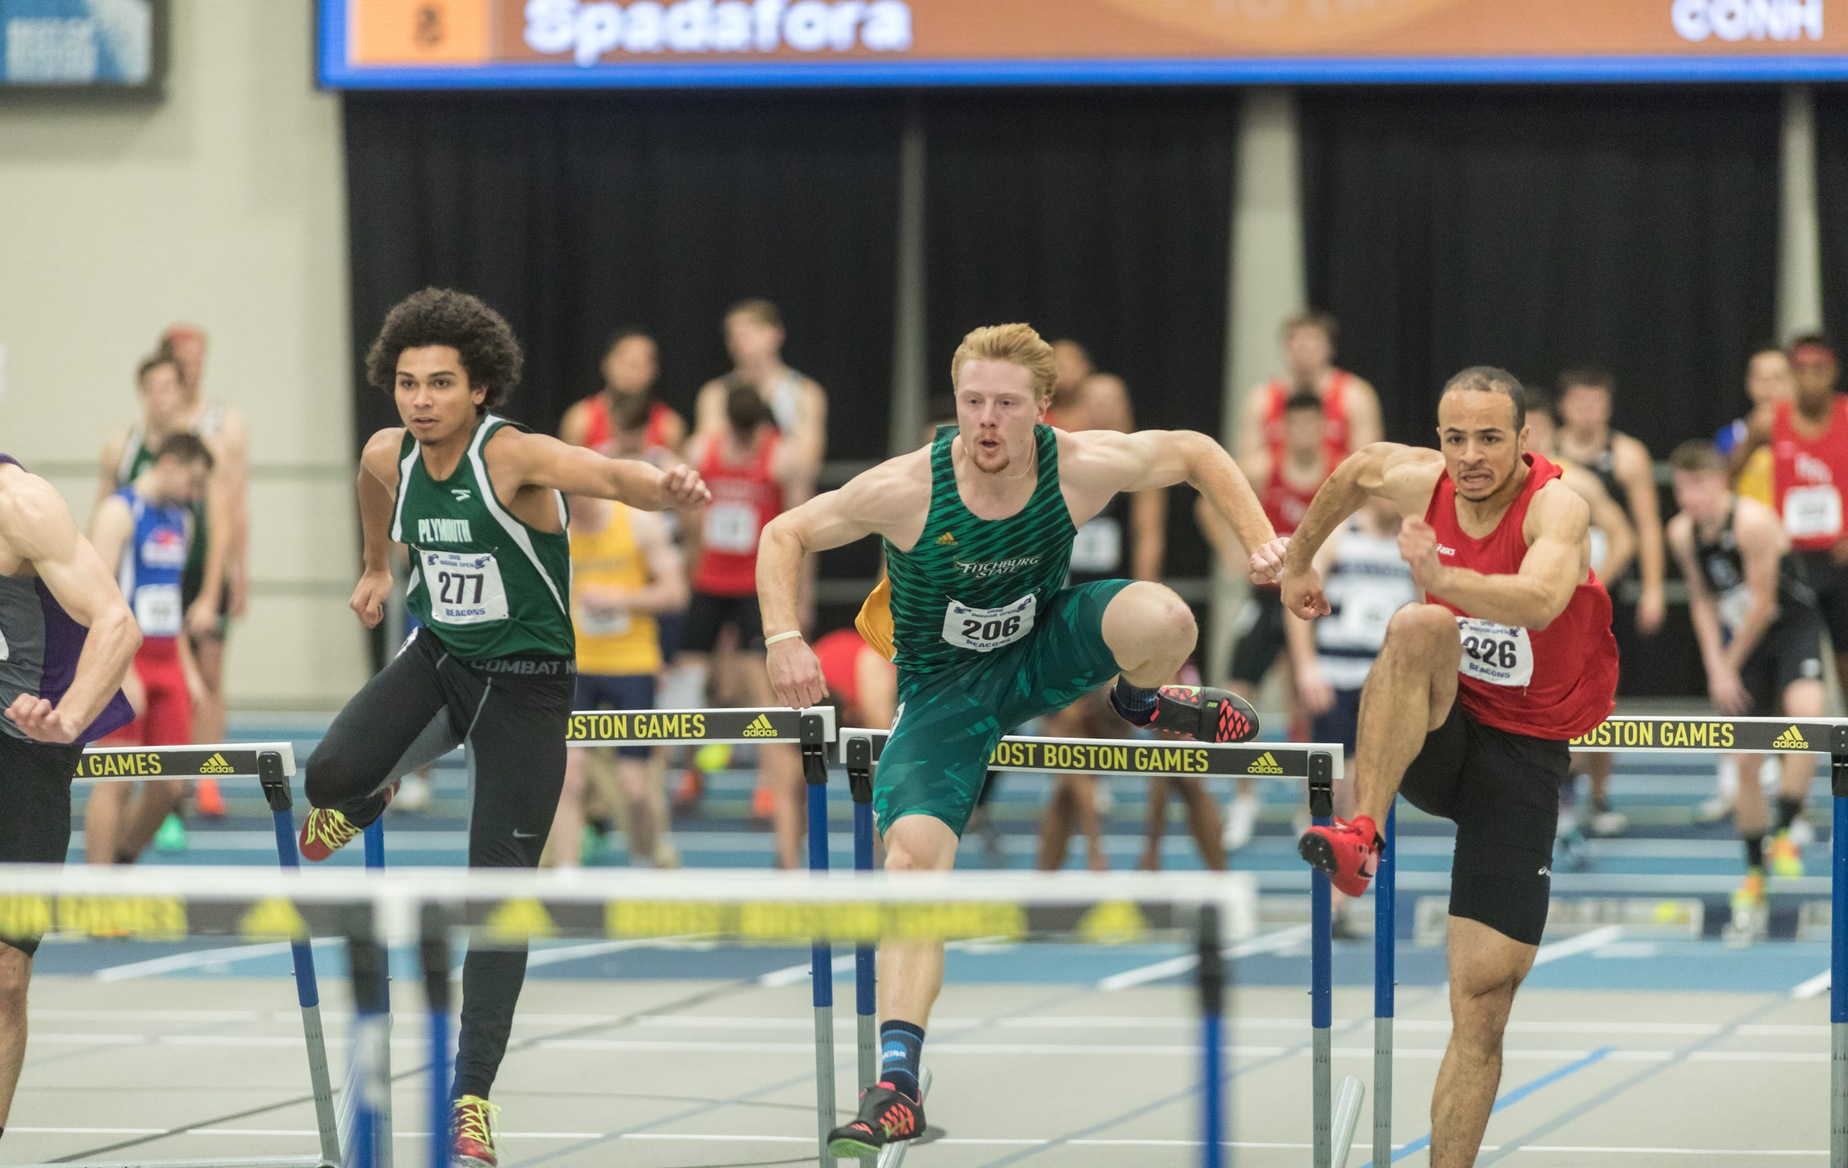 Fitchburg State Shines At Tufts And BU